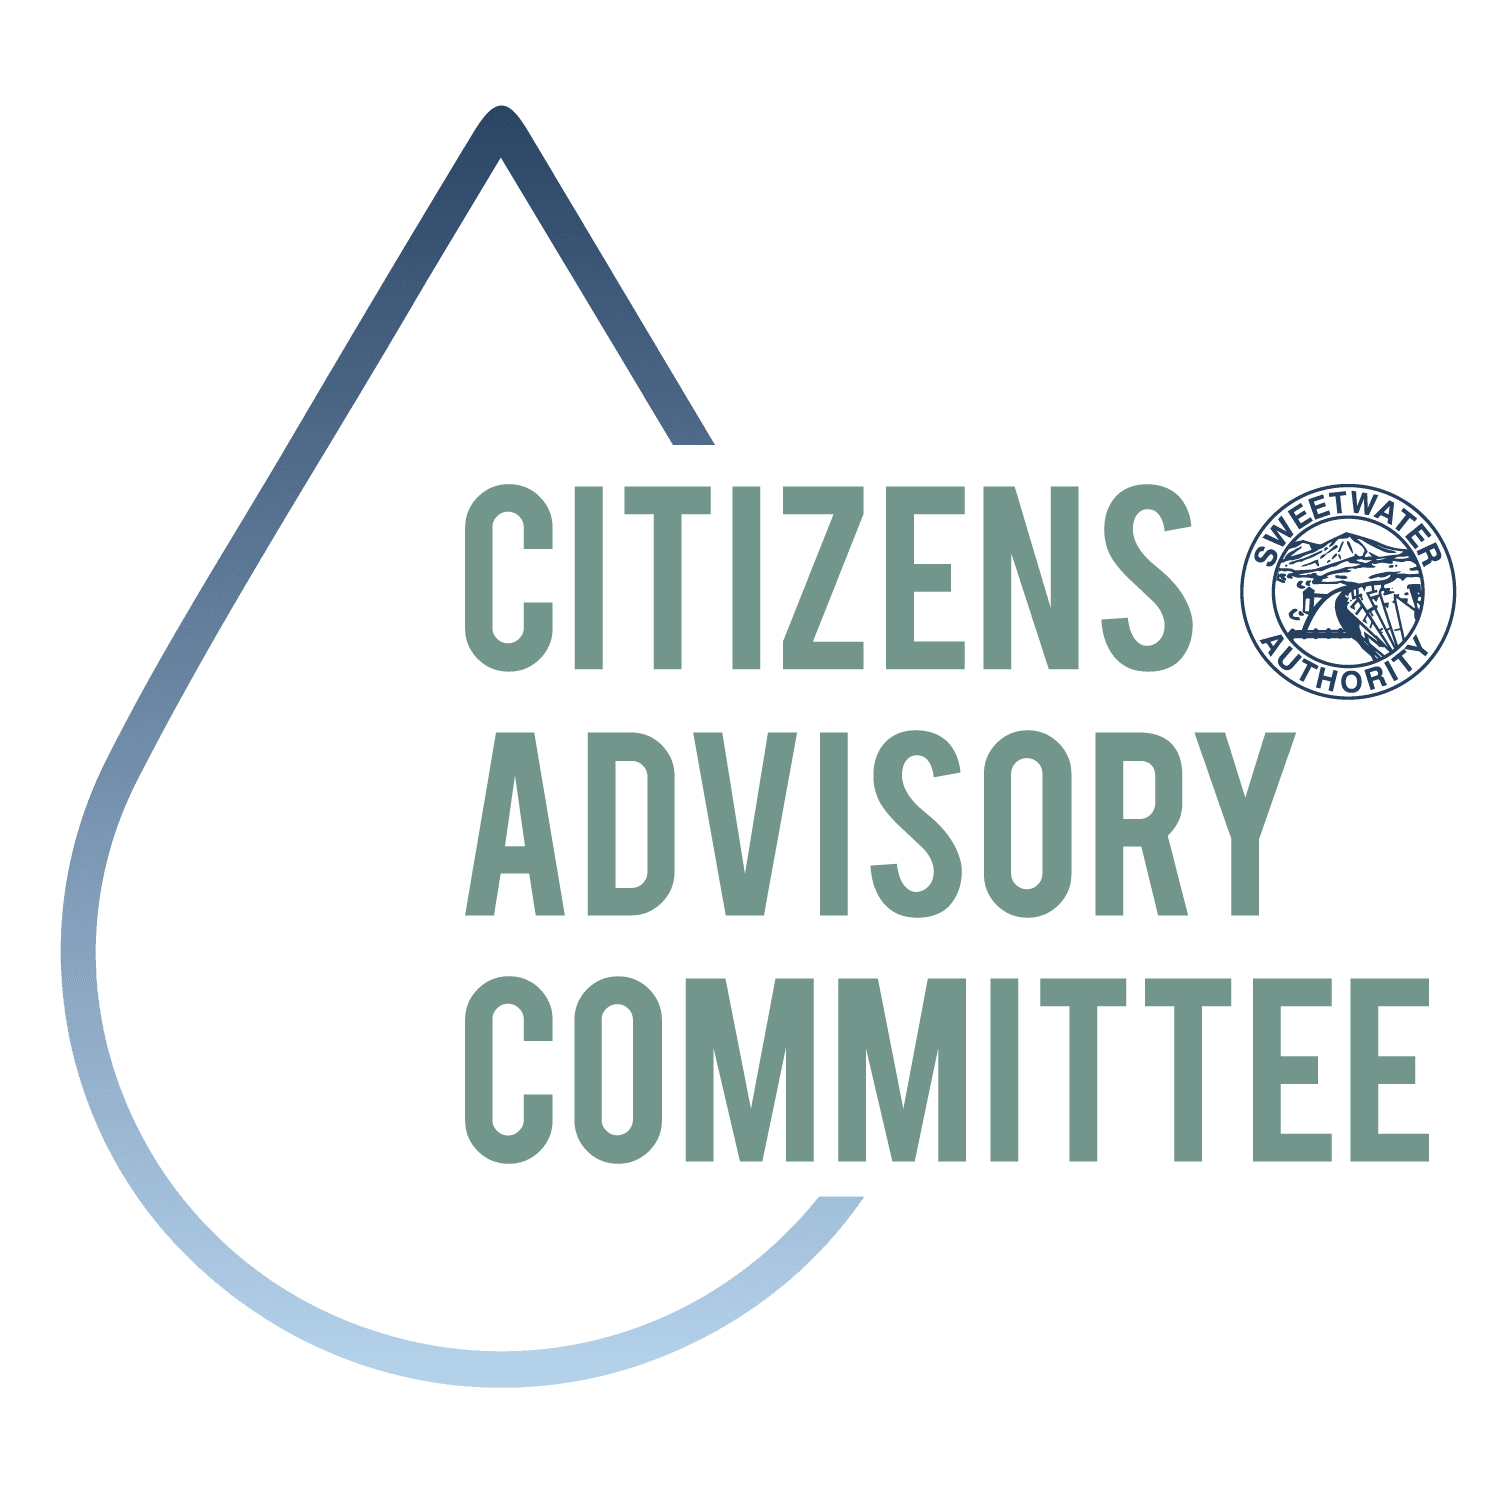 Citizens Advisory Committee logo - drop of water with Citizens Advisory Committee in text next to Sw